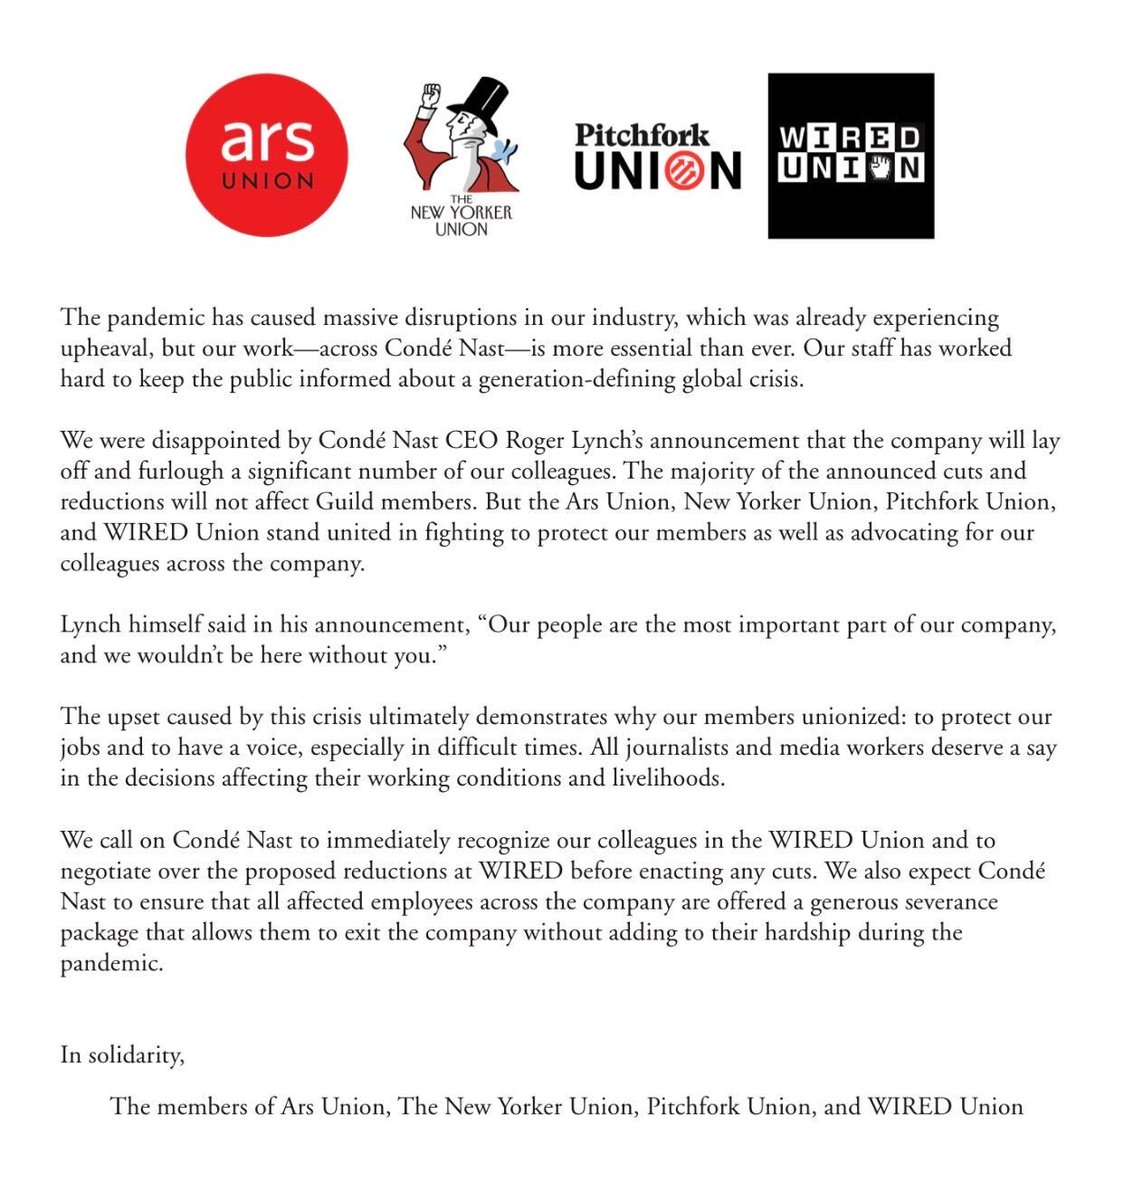 We are calling on @CondeNast and @RogerLynch to immediately recognize the WIRED Union, and negotiate over the proposed cuts that were made yesterday.